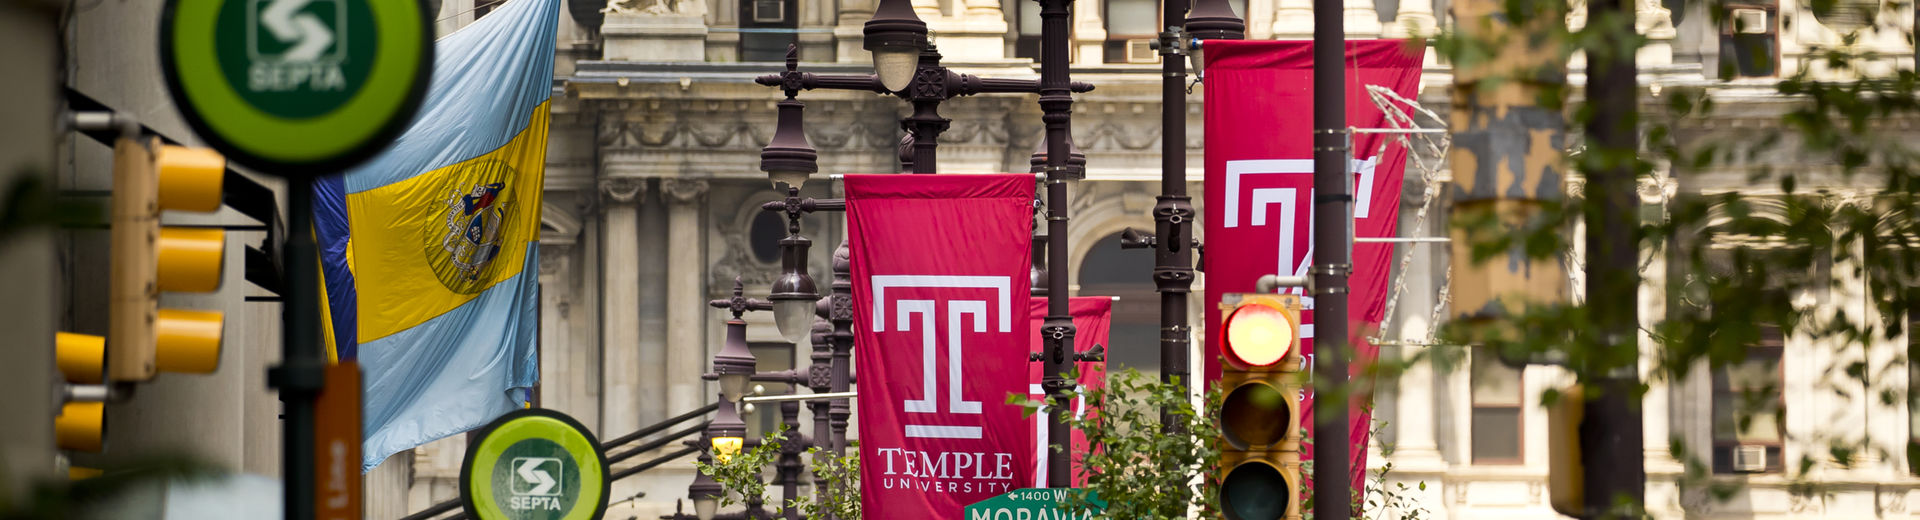 Temple flags amid street signs